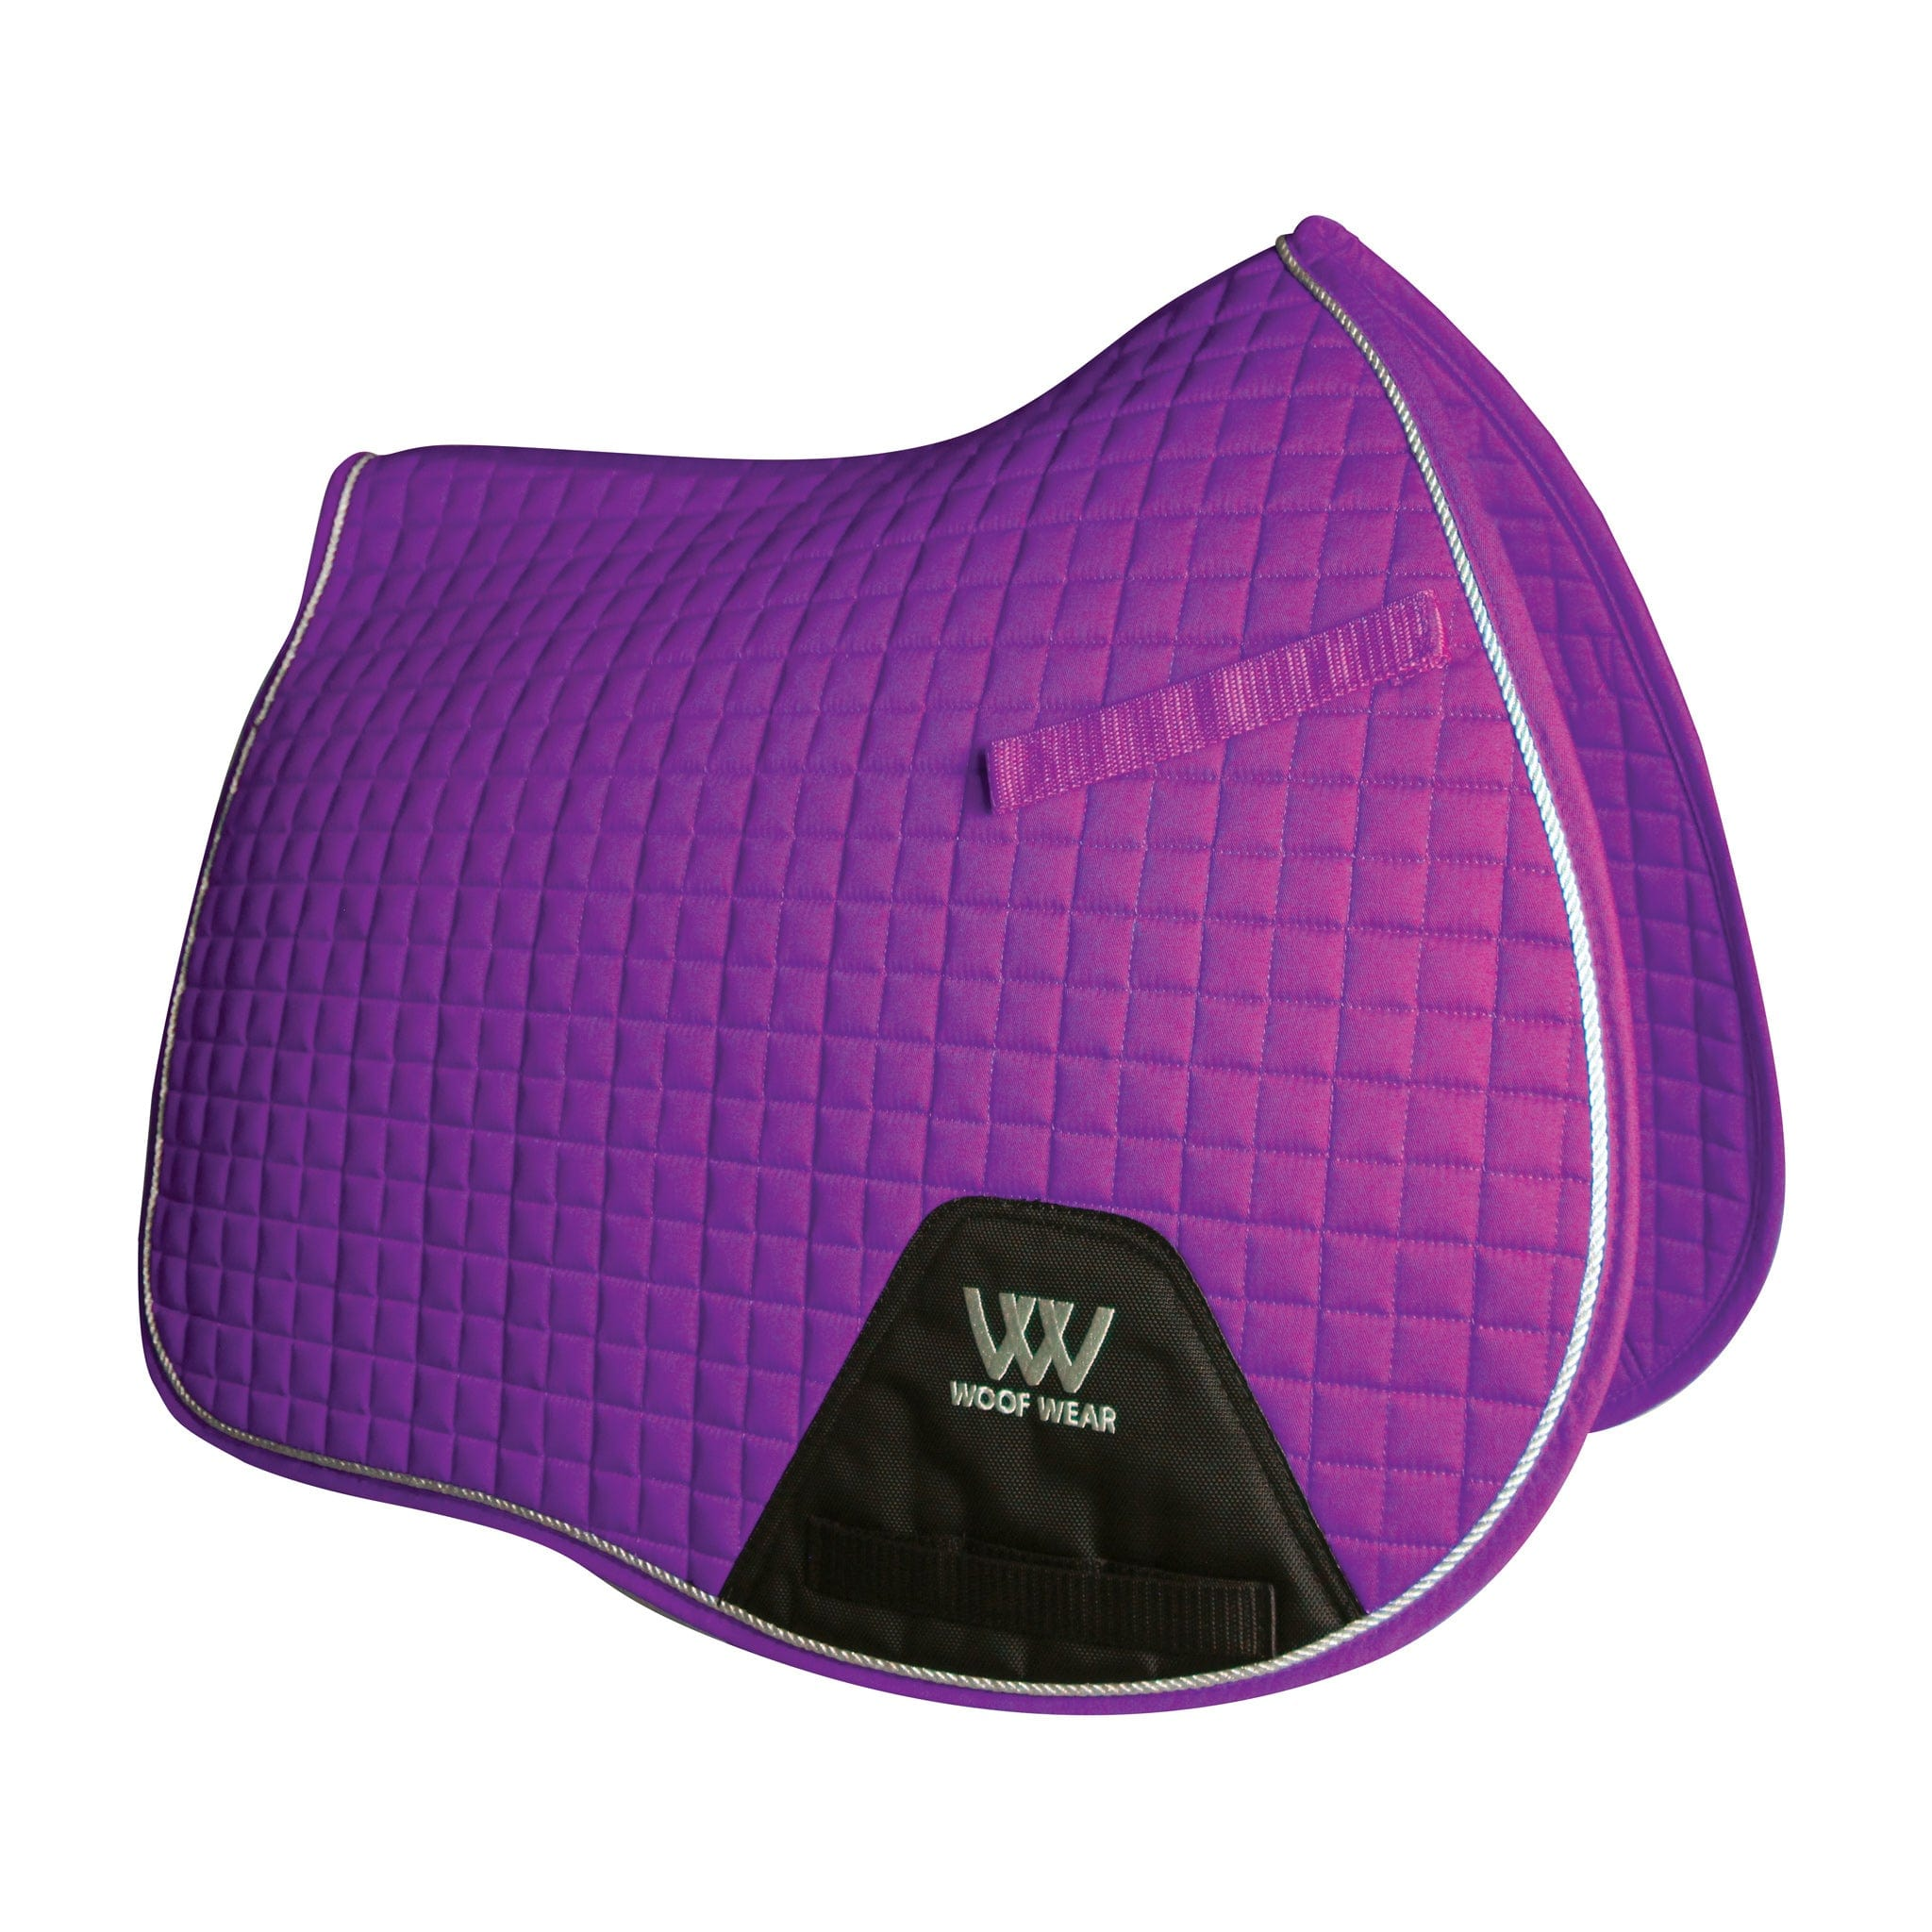 Woof Wear Colour Fusion Contour GP Saddle Cloth WS0001 BKUV Ultra Violet